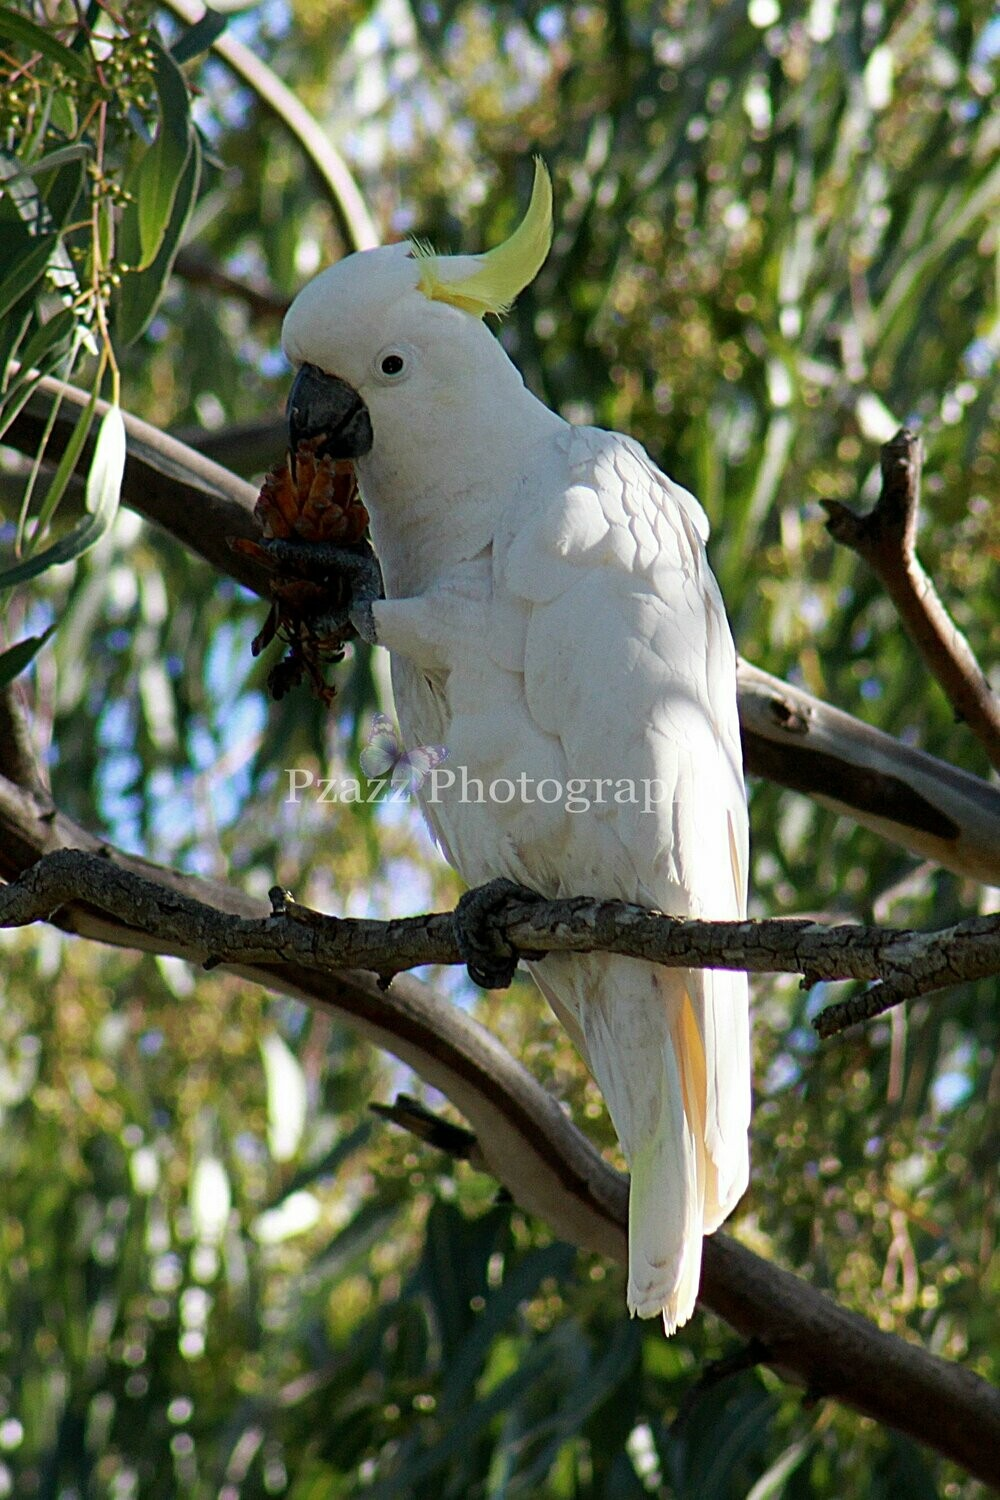 Pzazz Photography - Sulphur crested cockatoo - Full Drill Diamond Painting - Specially ordered for you. Delivery is approximately 4 - 6 weeks.